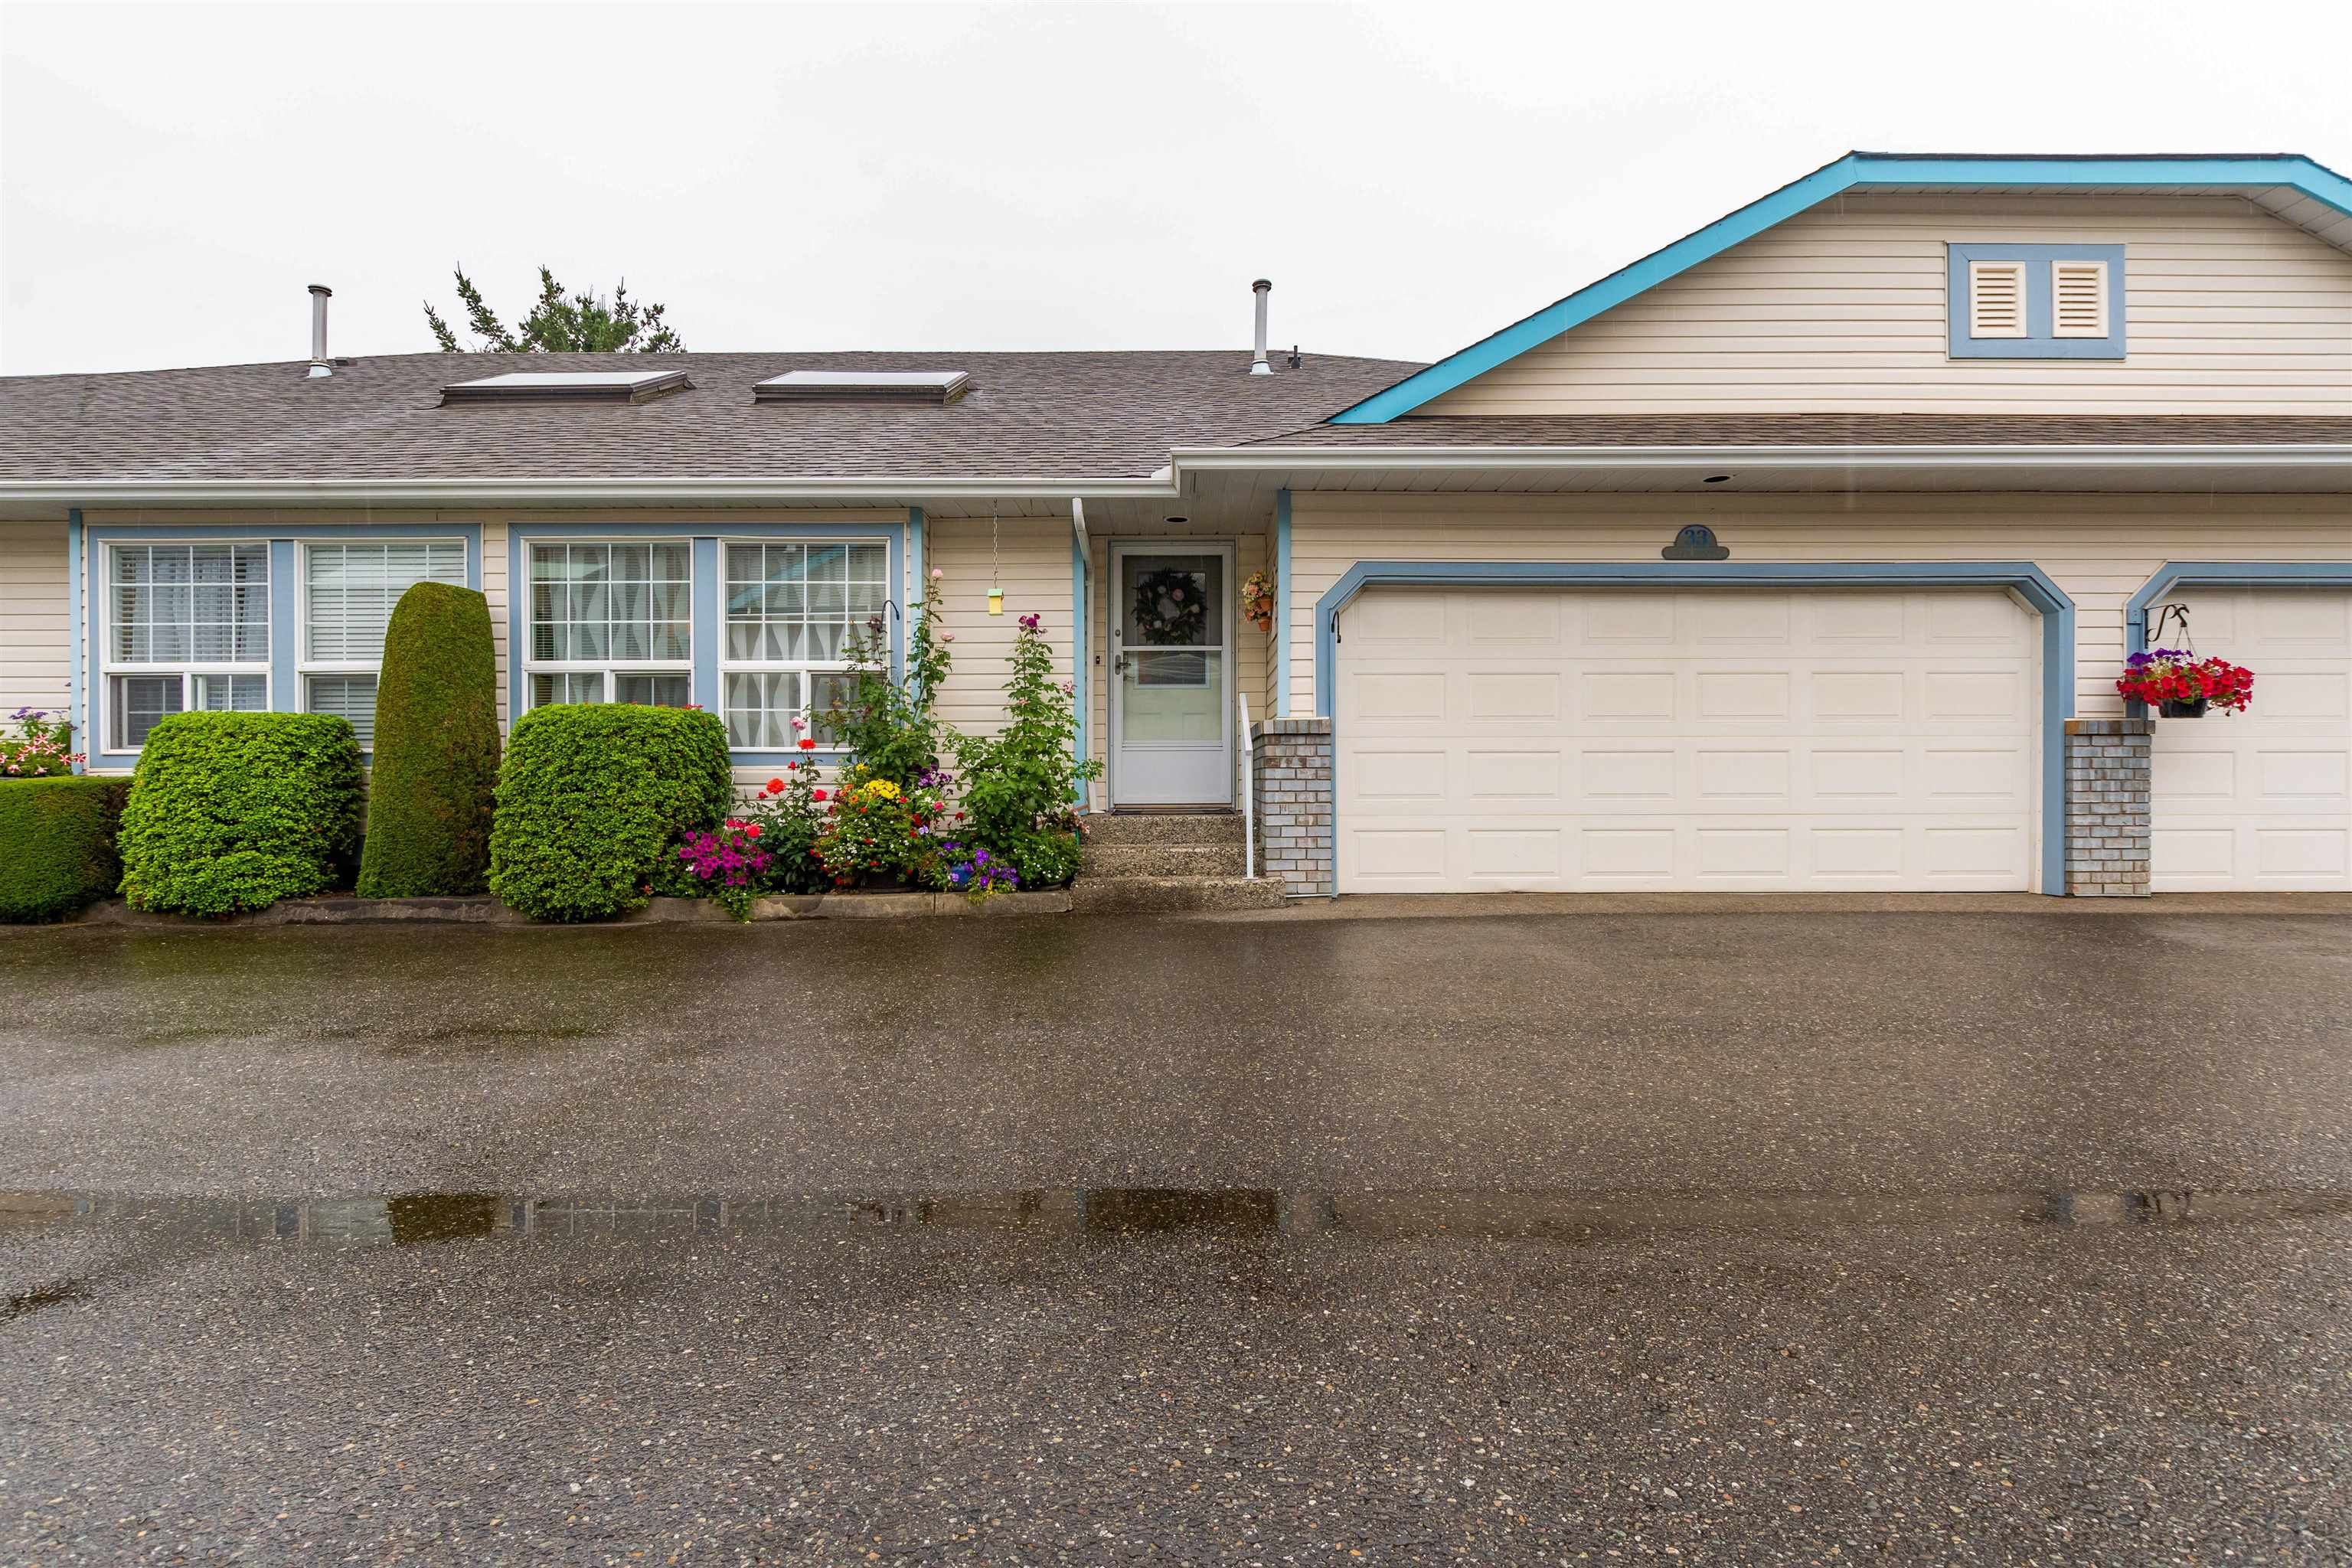 33 45175 WELLS ROAD - Sardis West Vedder Rd Townhouse for sale, 2 Bedrooms (R2624944) - #1